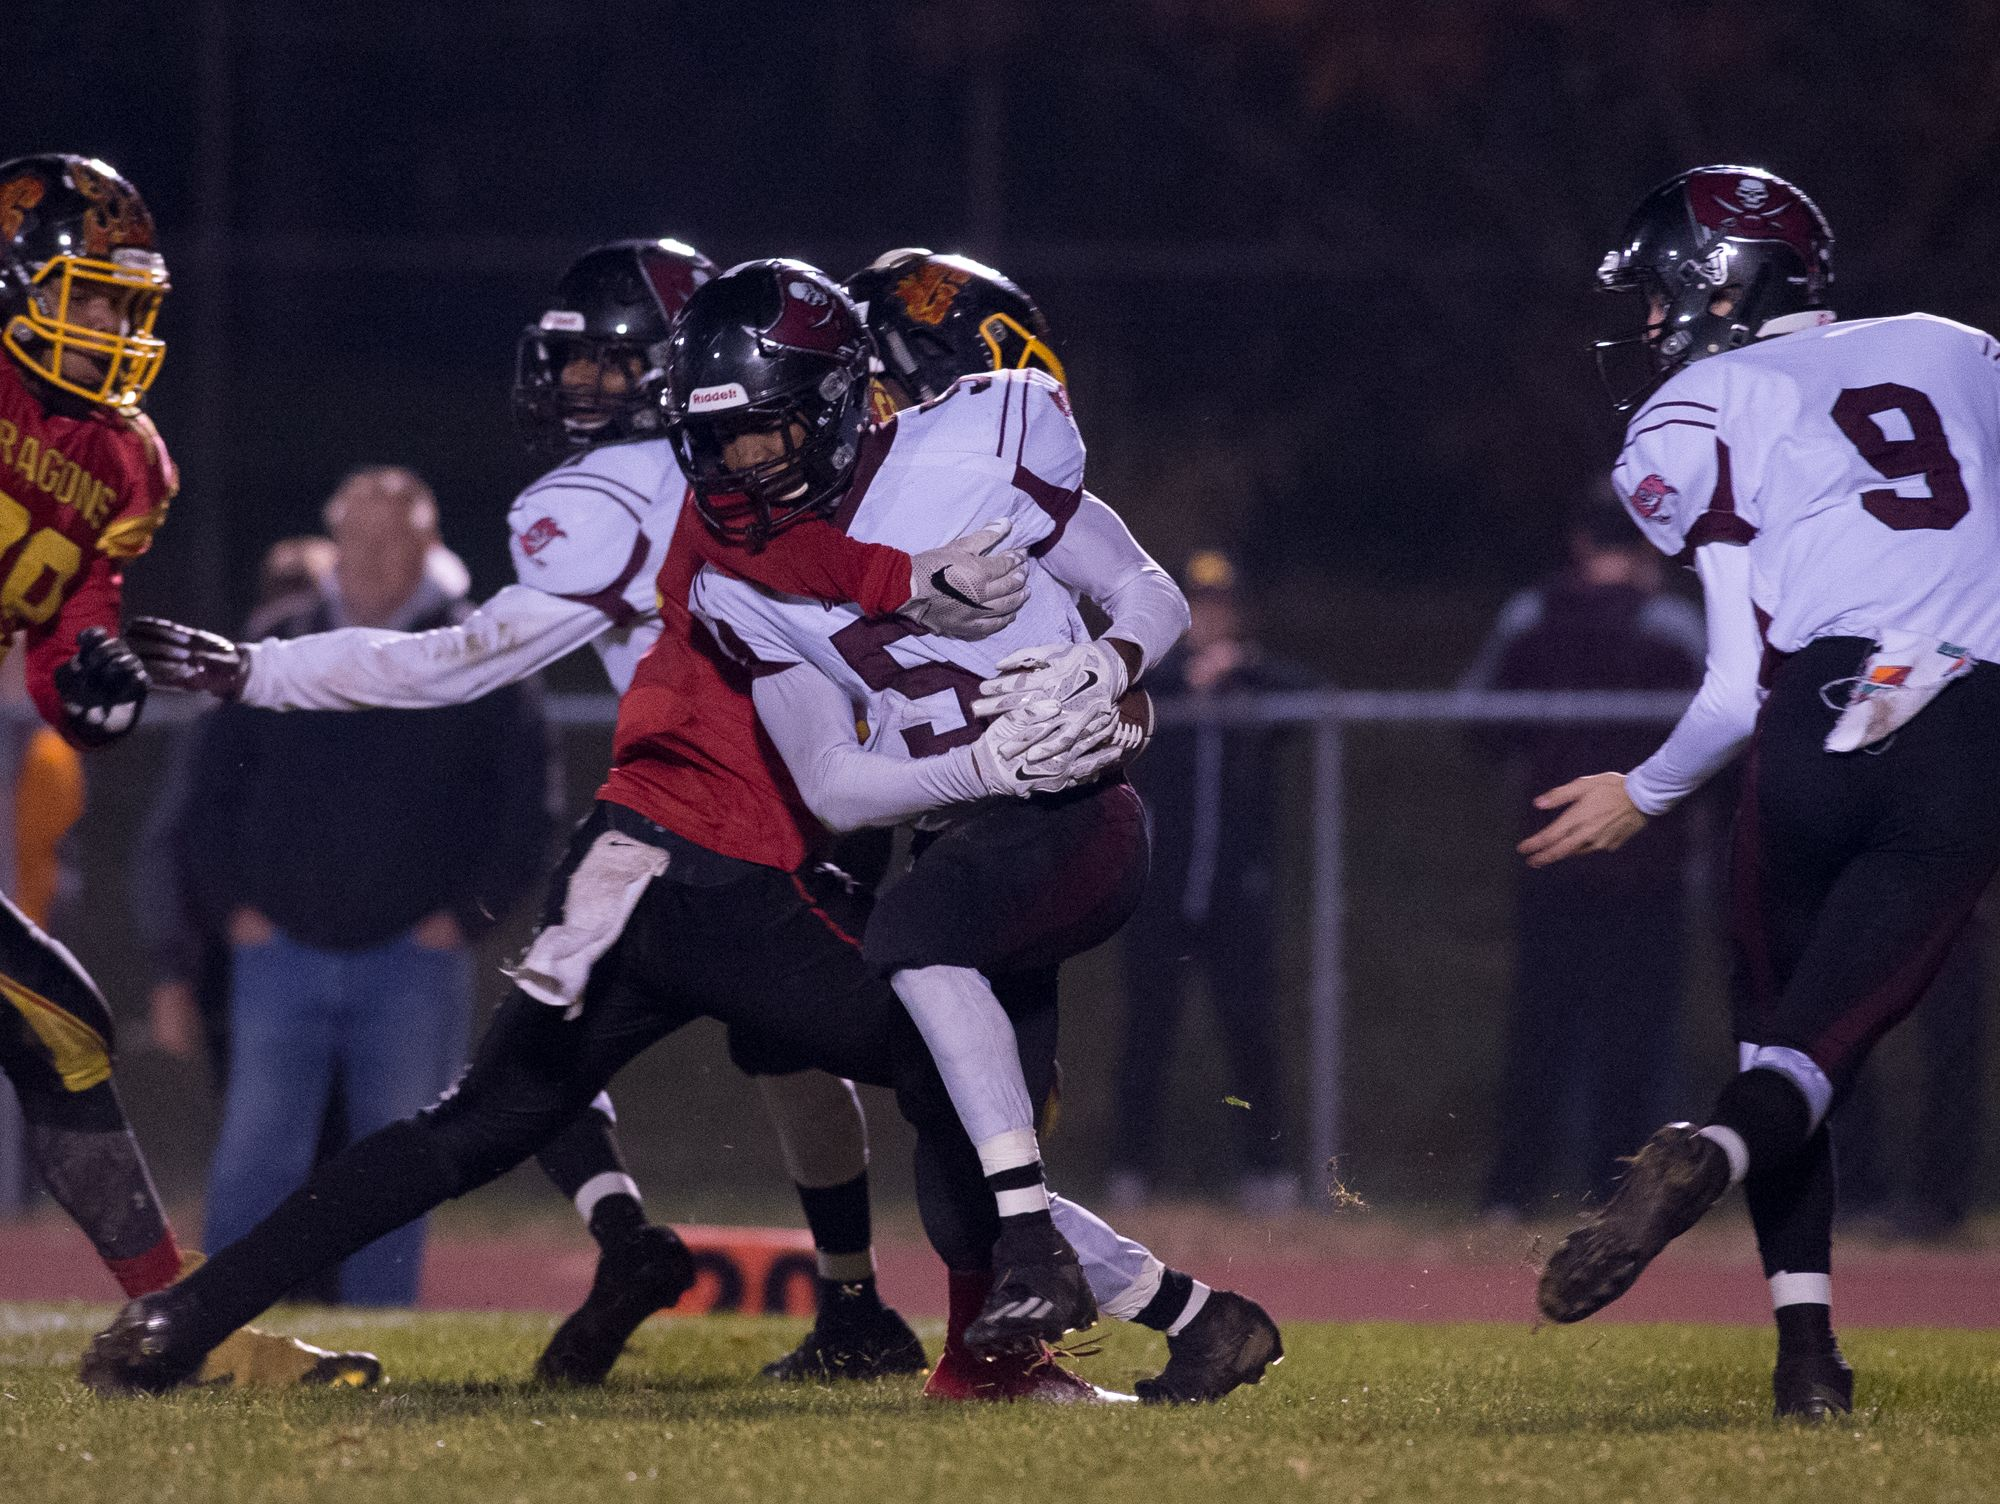 Caravel's Josiah Larkins (5) is quickly tackled by Glasgow's Tyrique Woodland (15) during the second quarter in the opening round of the DIAA Division II playoffs at Glasgow High School.